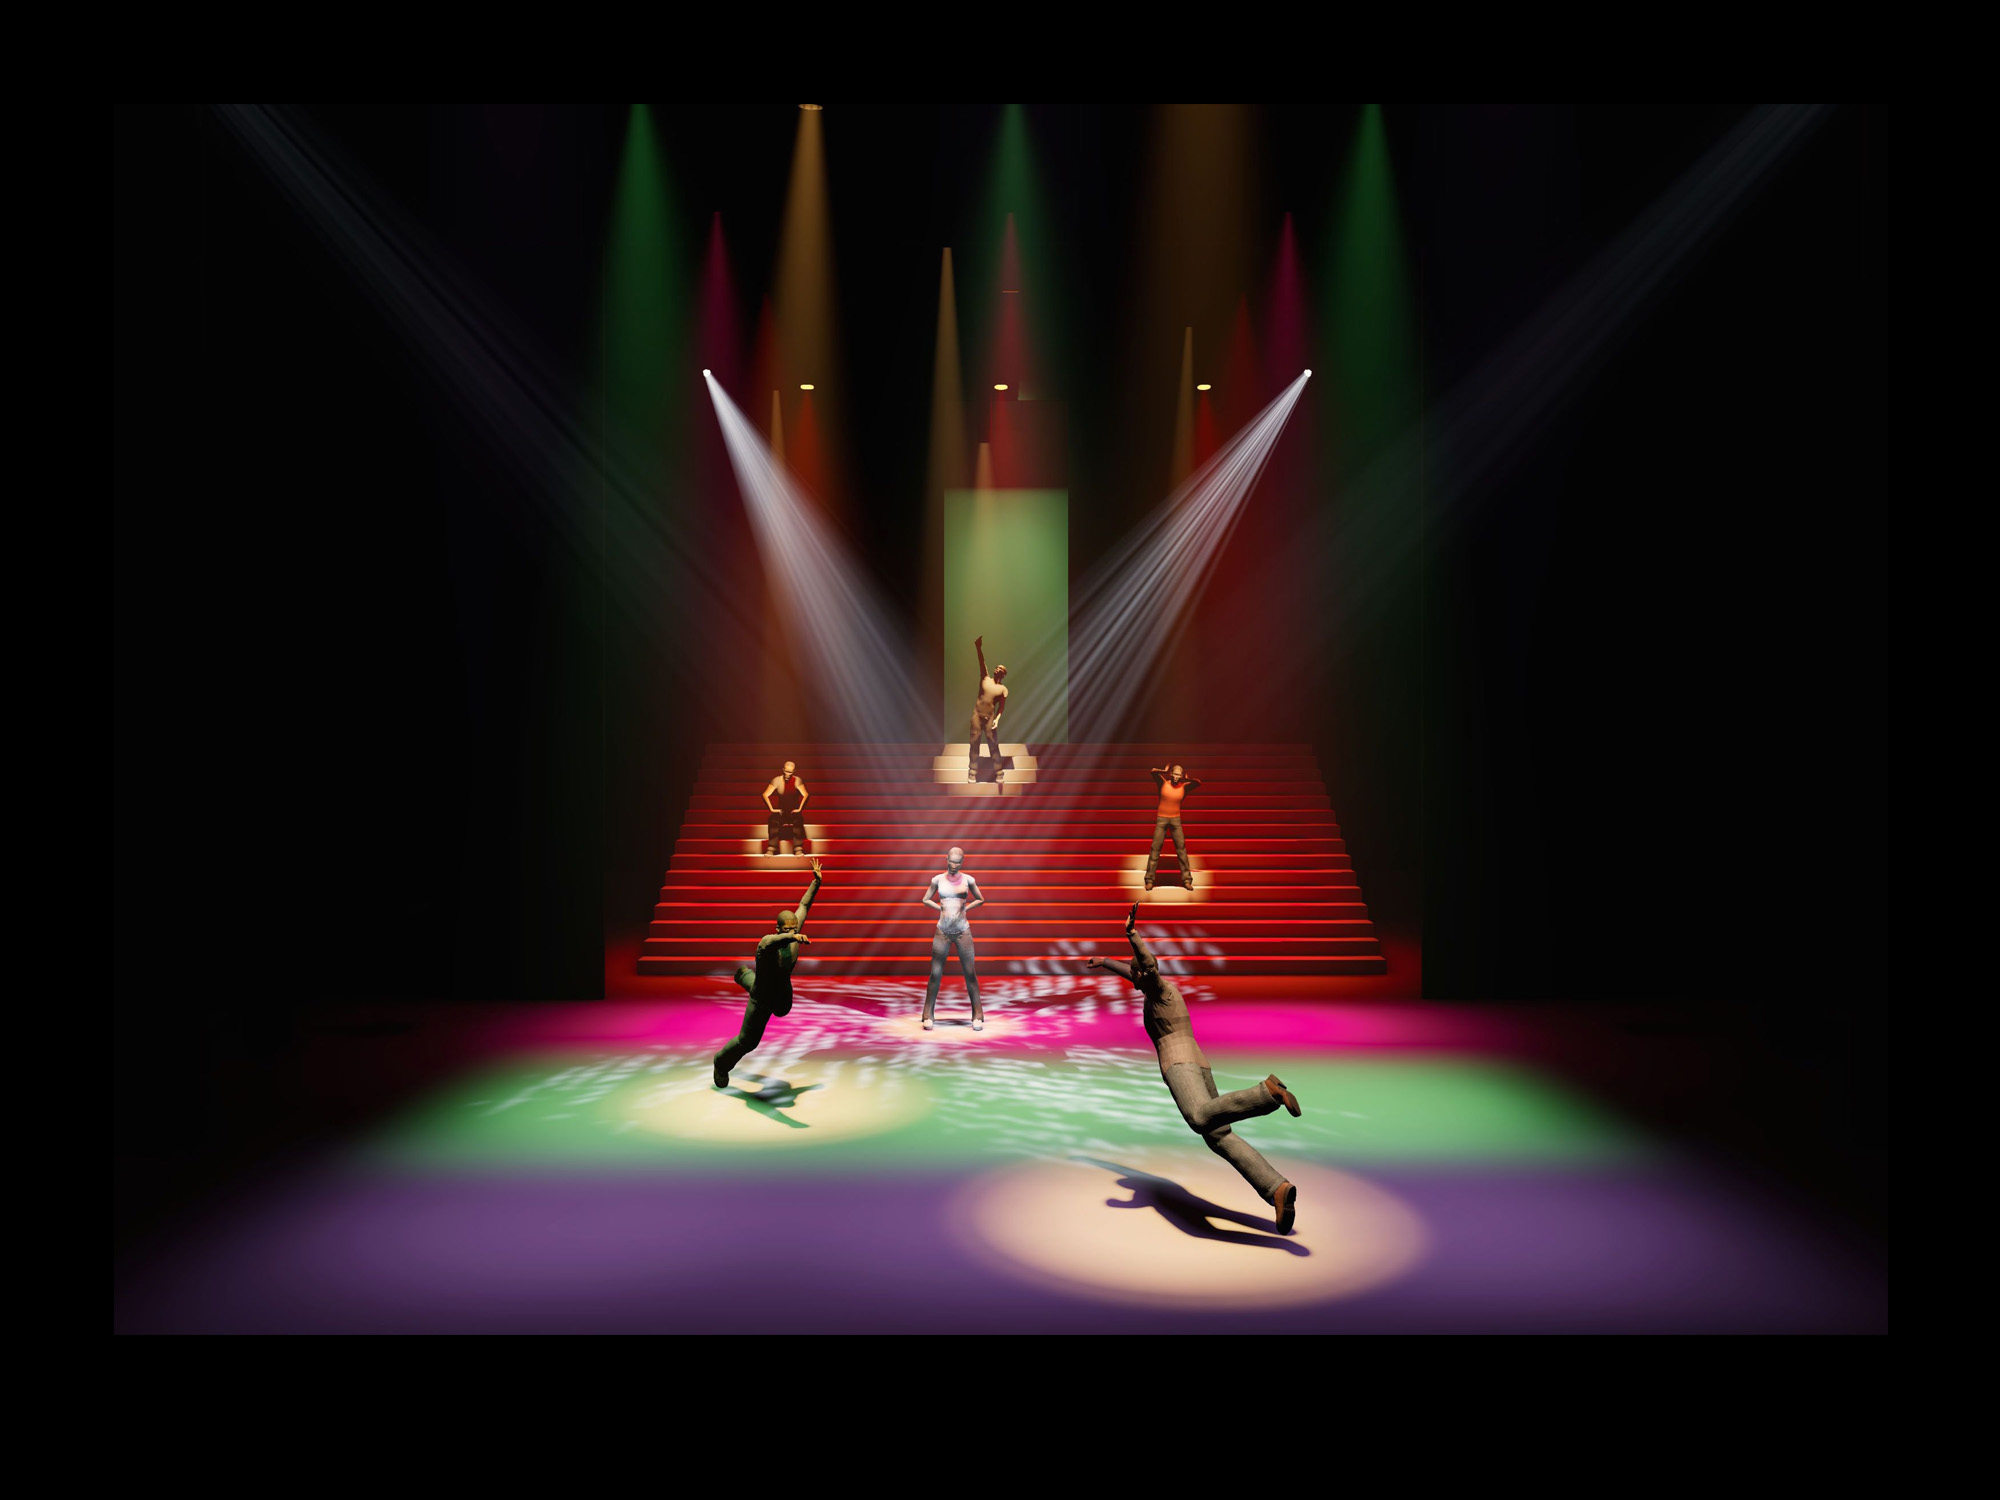 Free lighting design visualizer pre visual d renderings for stage